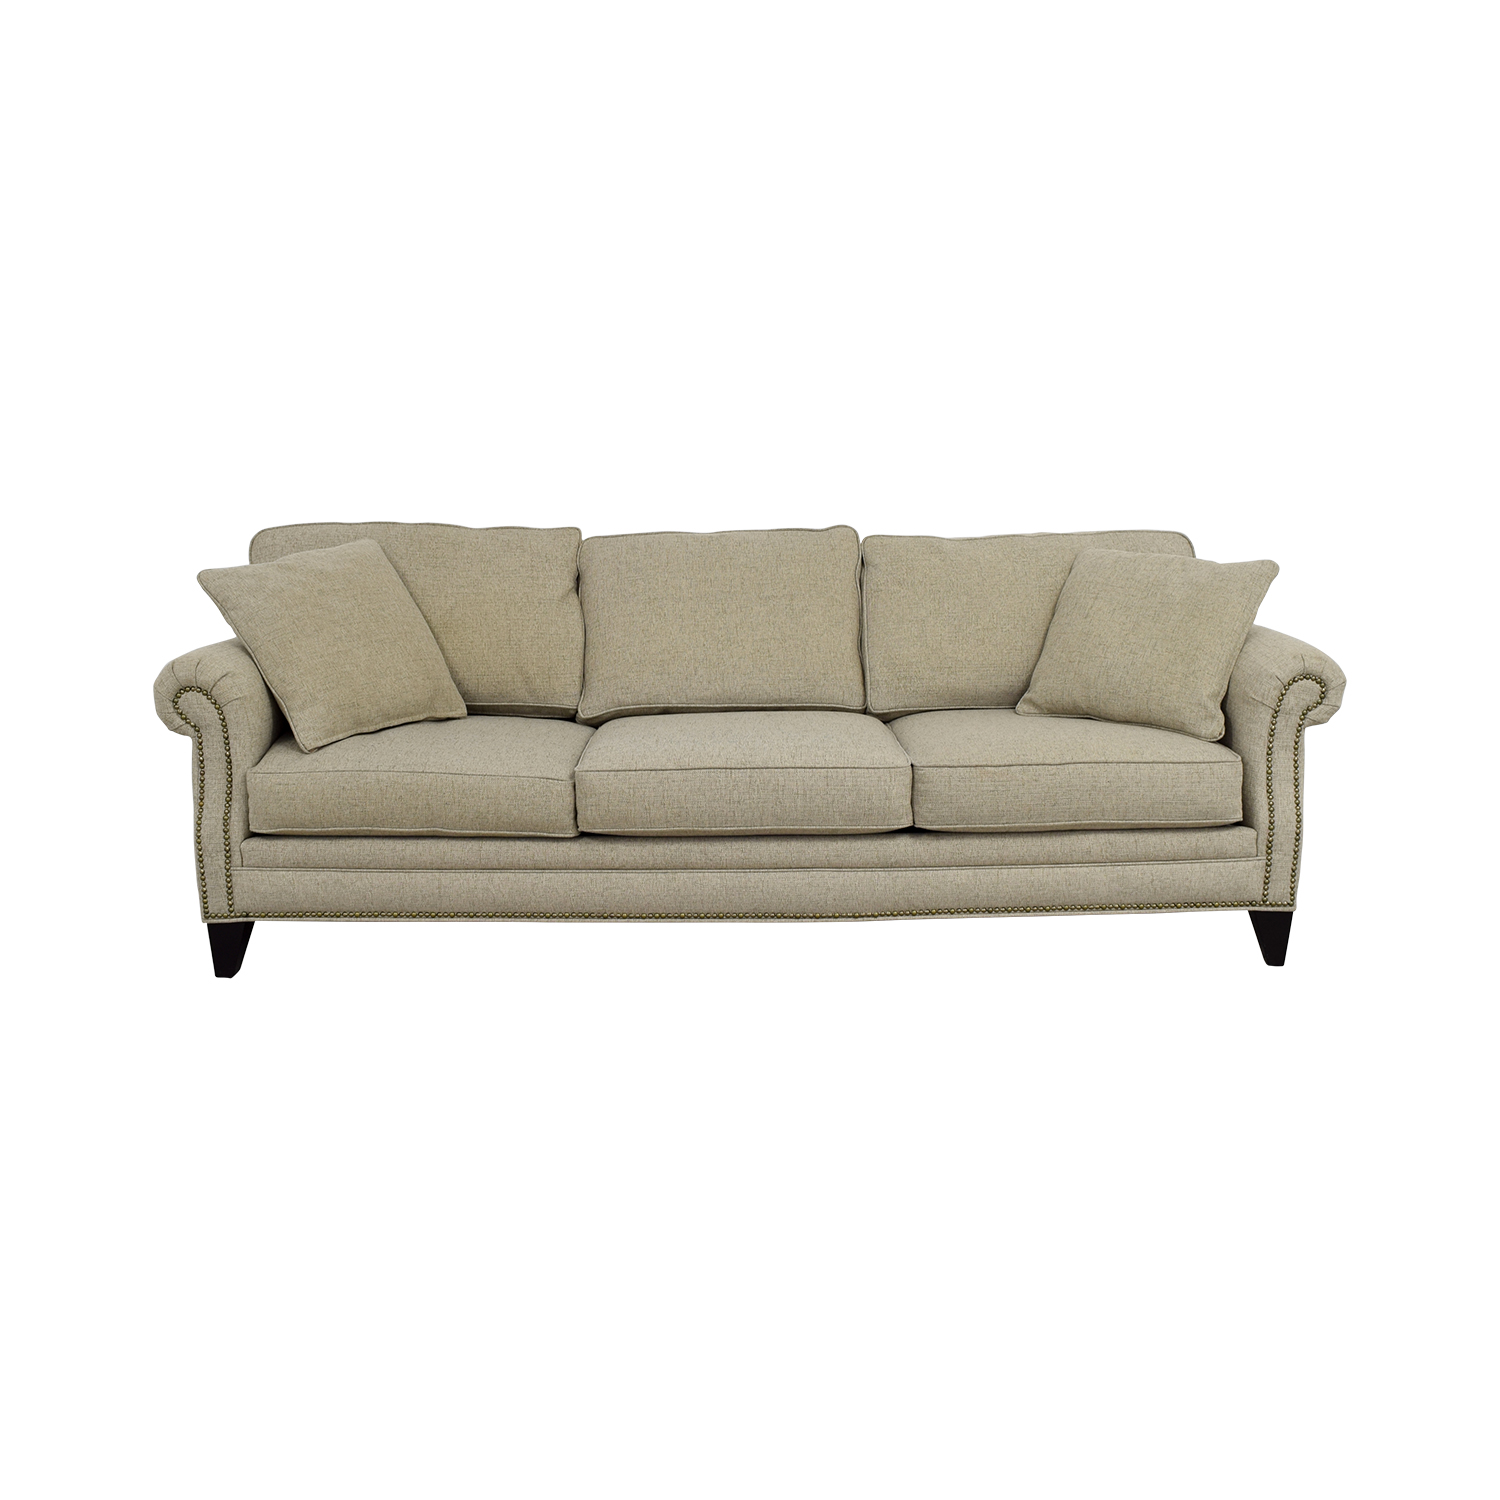 Macys Macys Tan Fabric Nailhead Sofa second hand